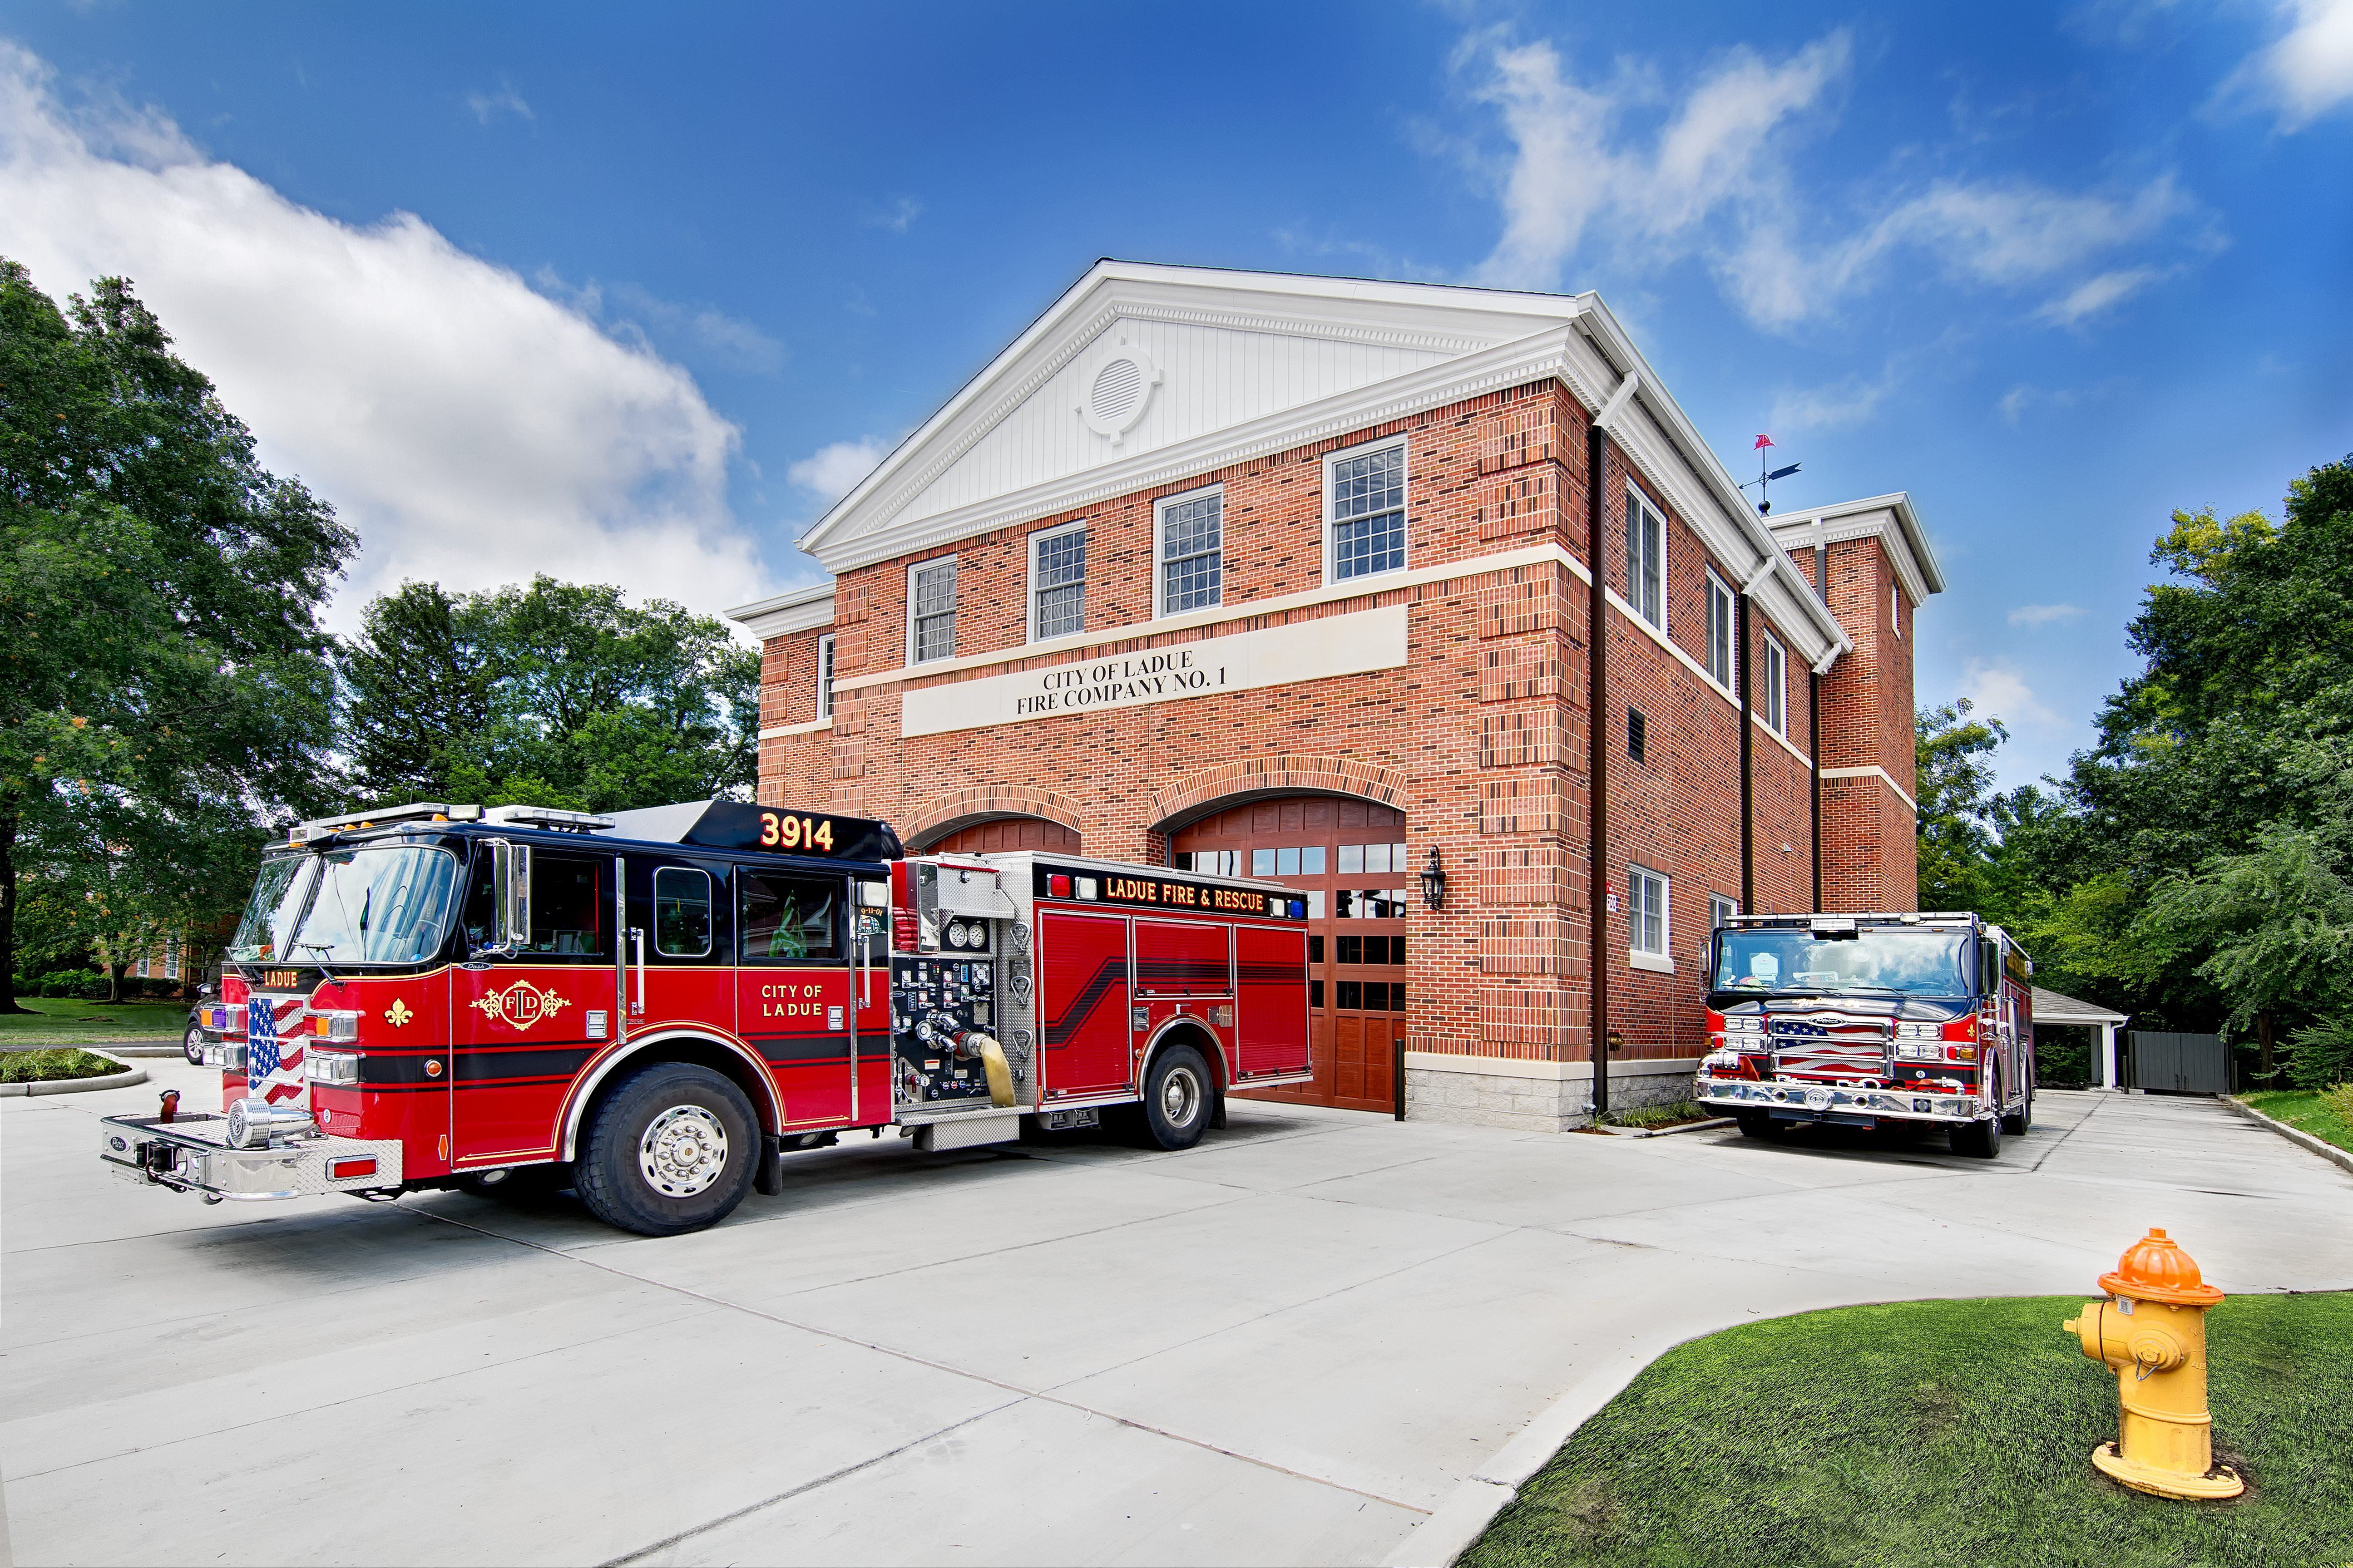 City of Ladue - Fire Station #1